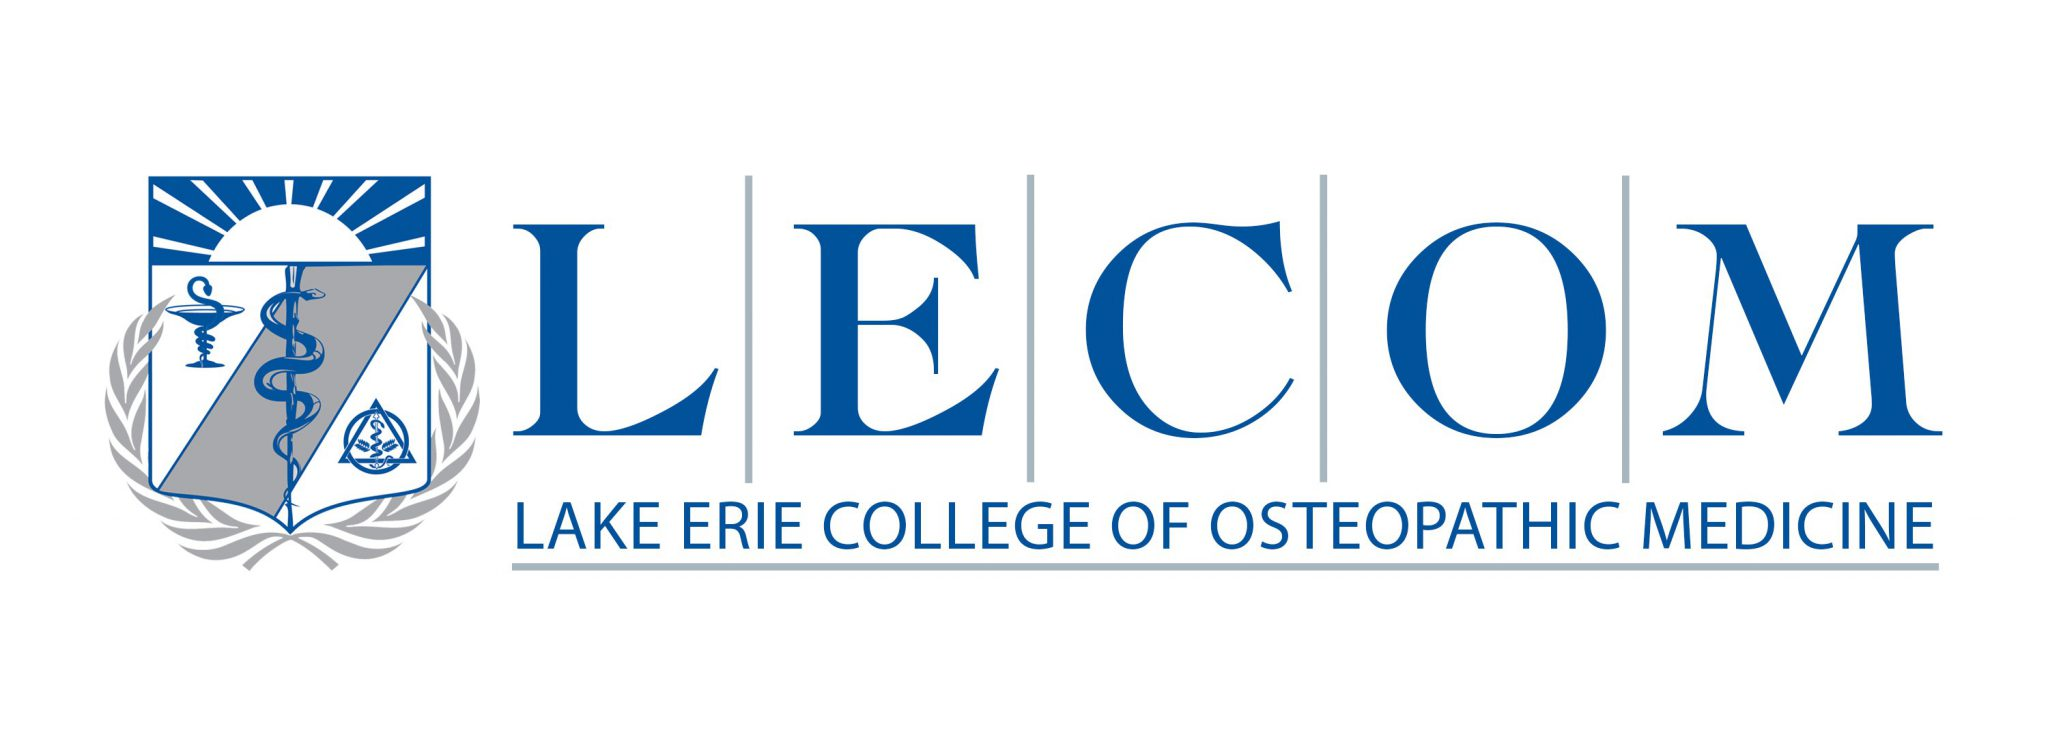 Lake Erie College of Osteopathic Medicine Bradenton Campus Secondary Application LECOM